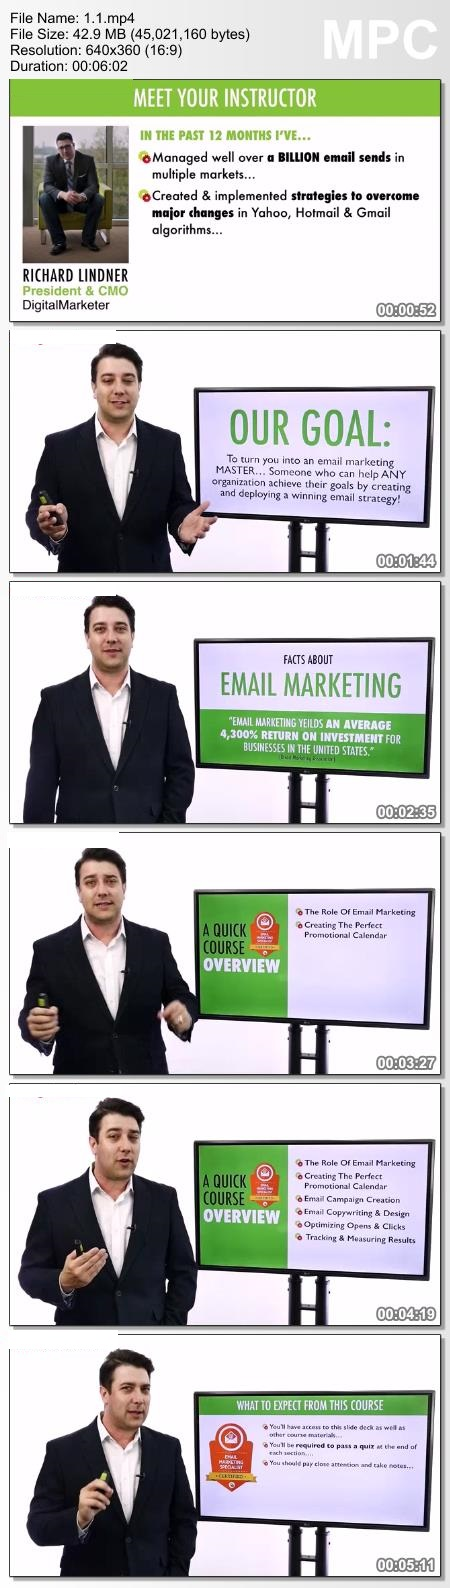 Richard Lindner - Email Marketing Mastery 1